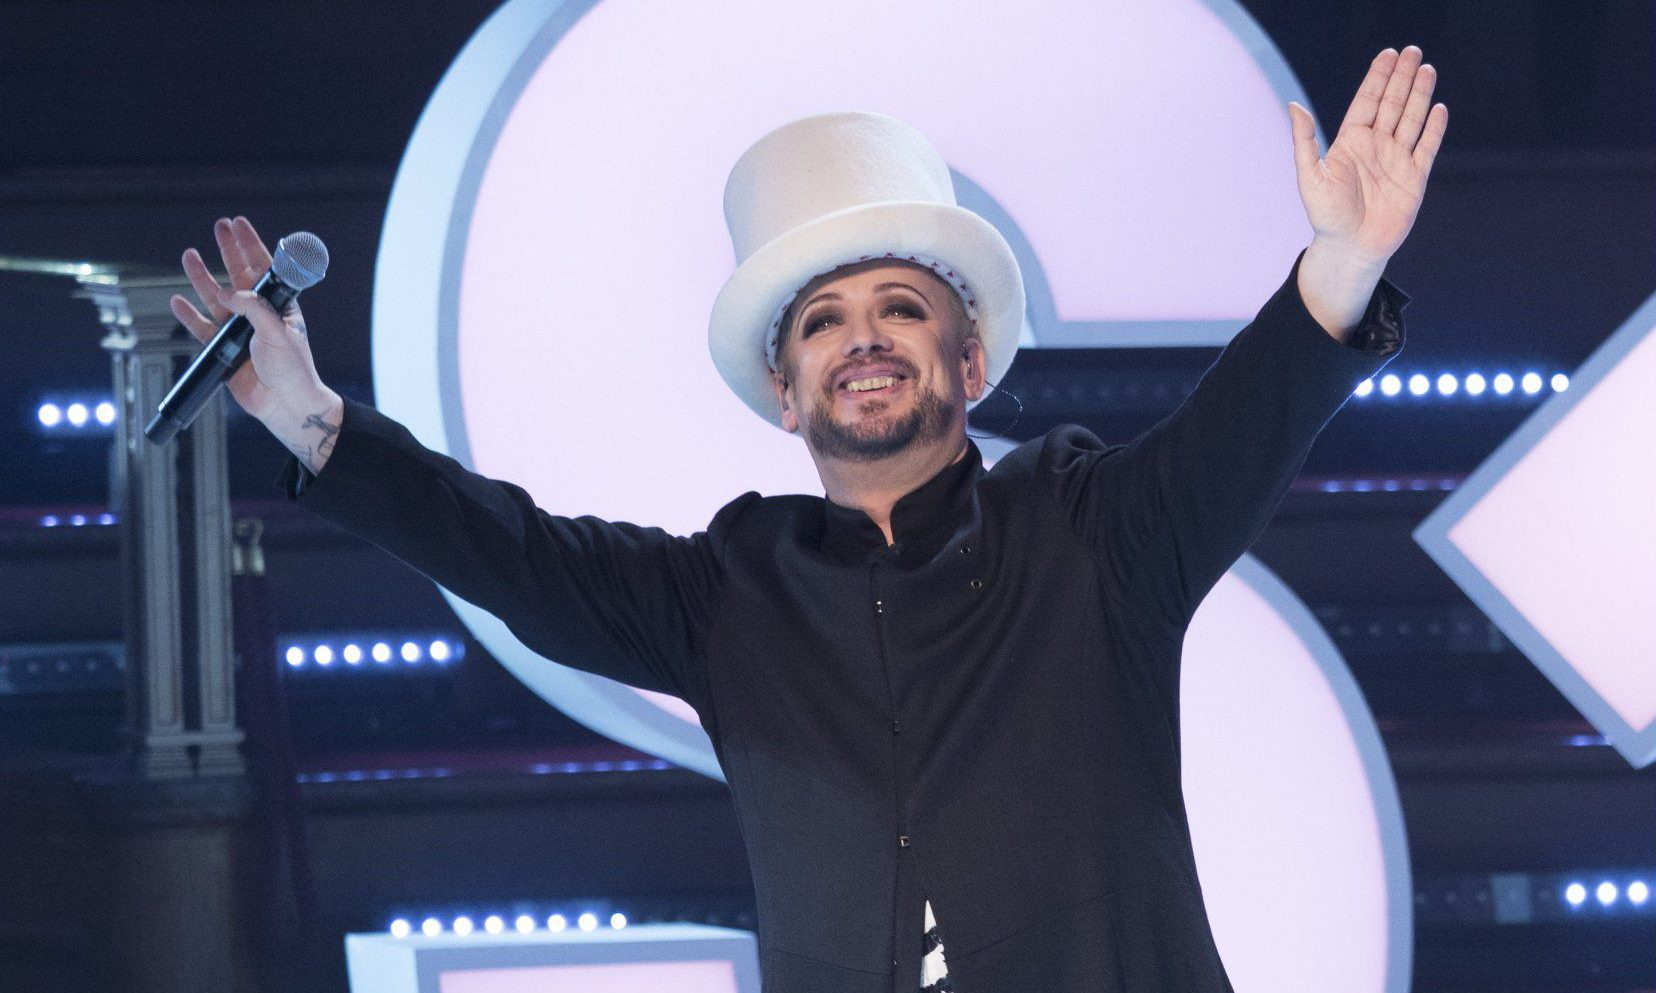 In case you missed it, here's Boy George's cover of David Bowie's Starman that had Stand Up To Cancer viewers blubbing